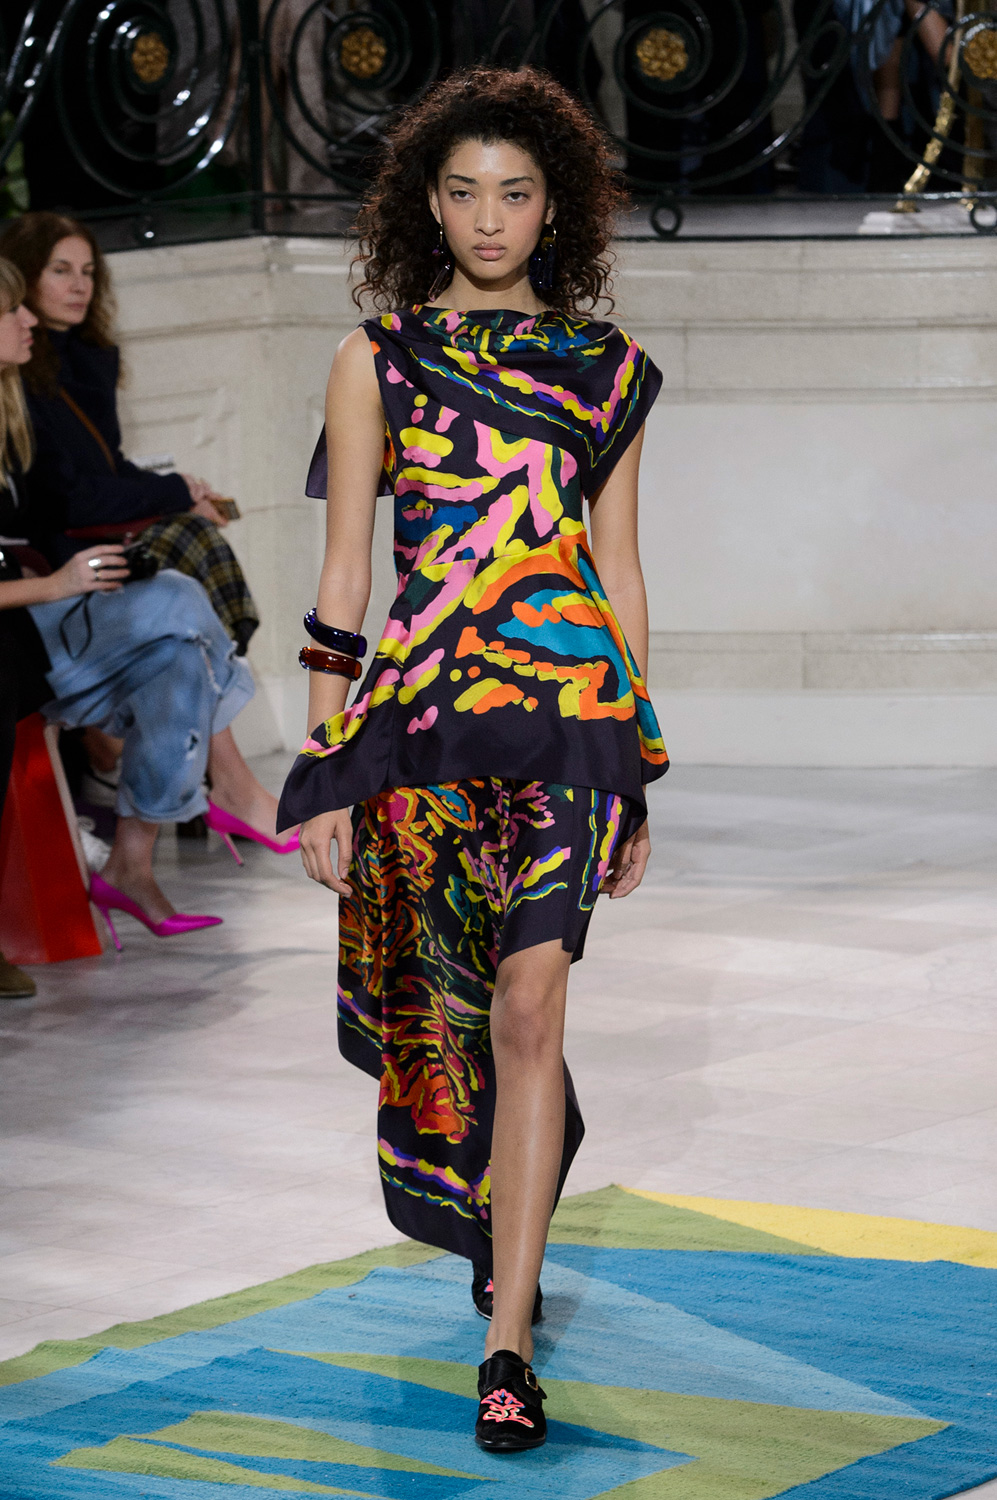 Incan Embroidery Brings an Exotic Edge to the Peter Pilotto Catwalk